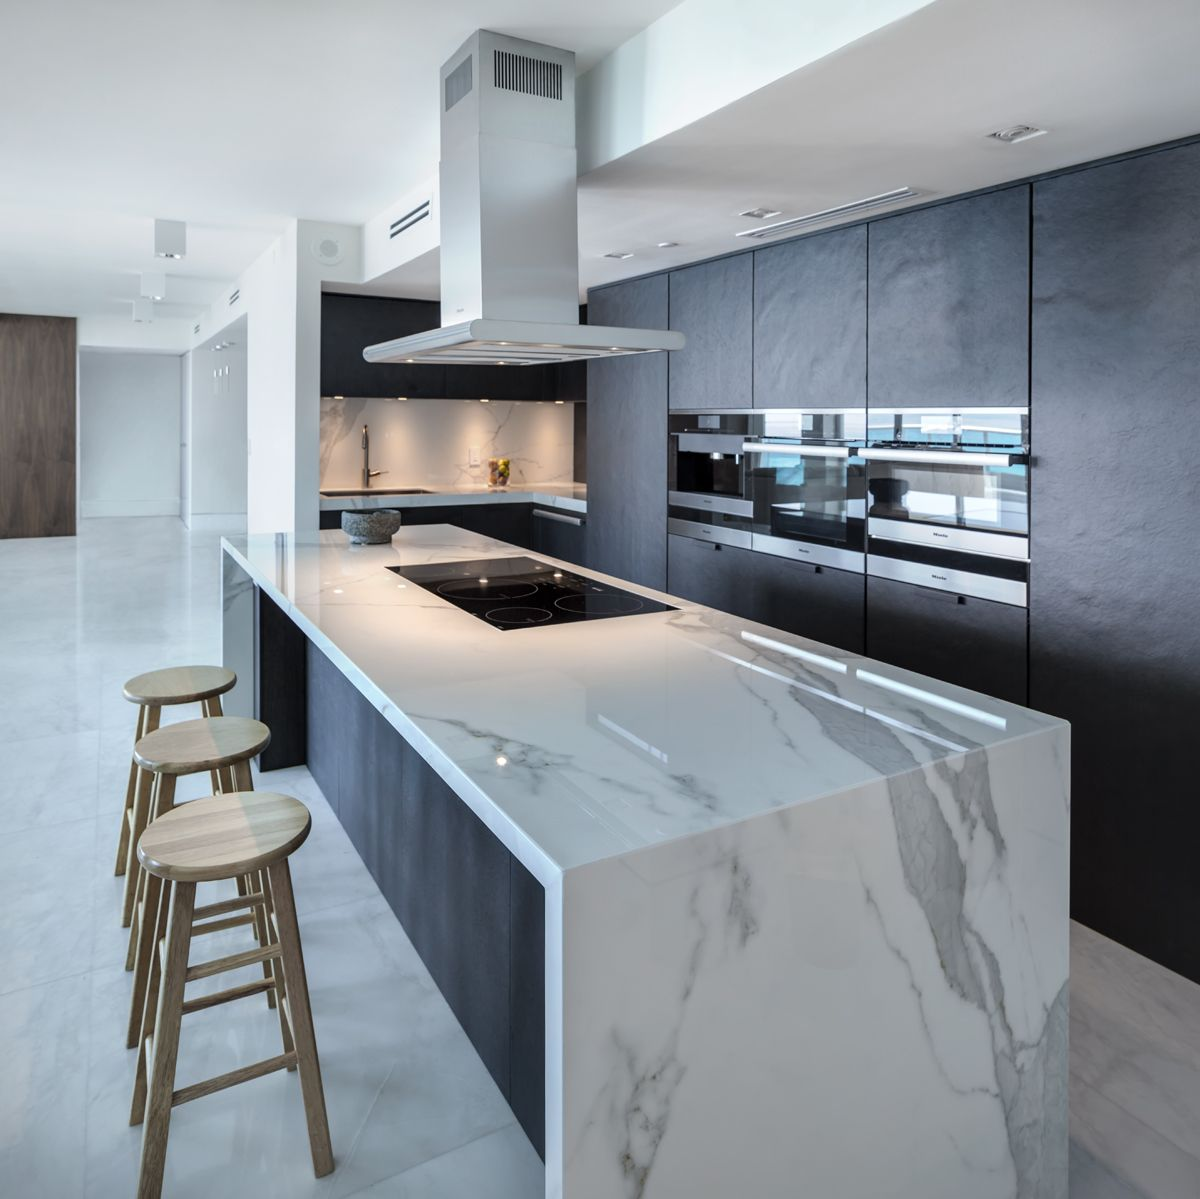 Neolith The Main Material In A Luxurious Apartment In Miami Beach